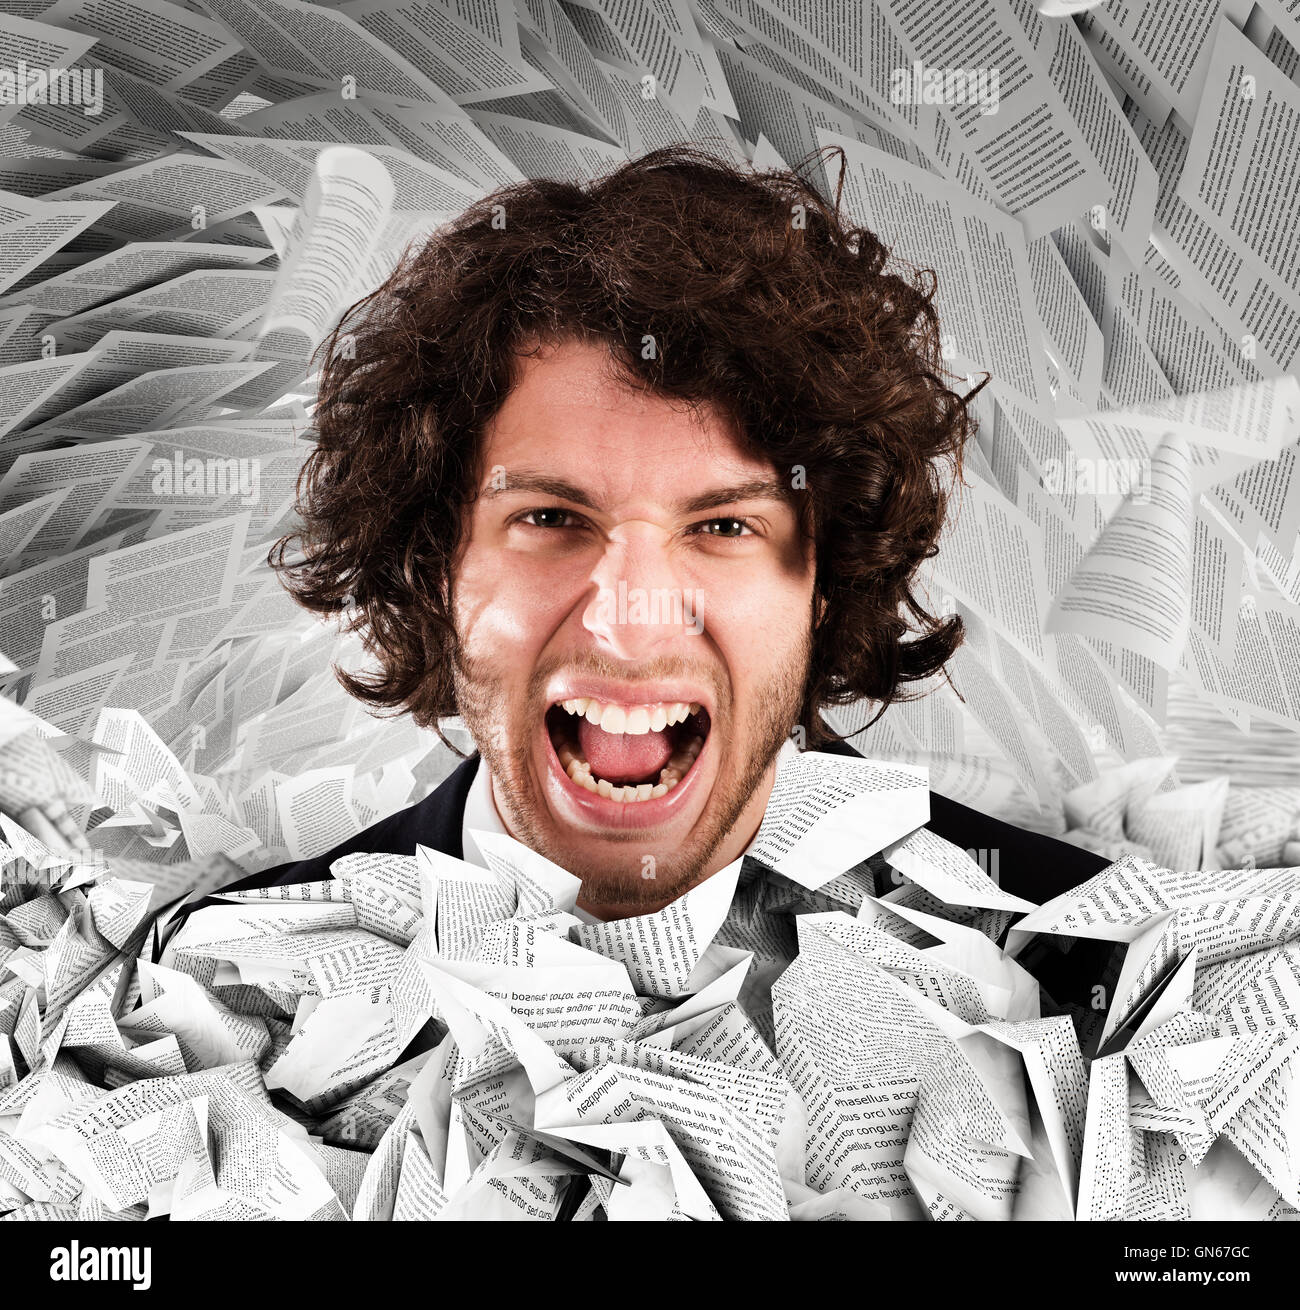 Screaming stressed from overwork - Stock Image